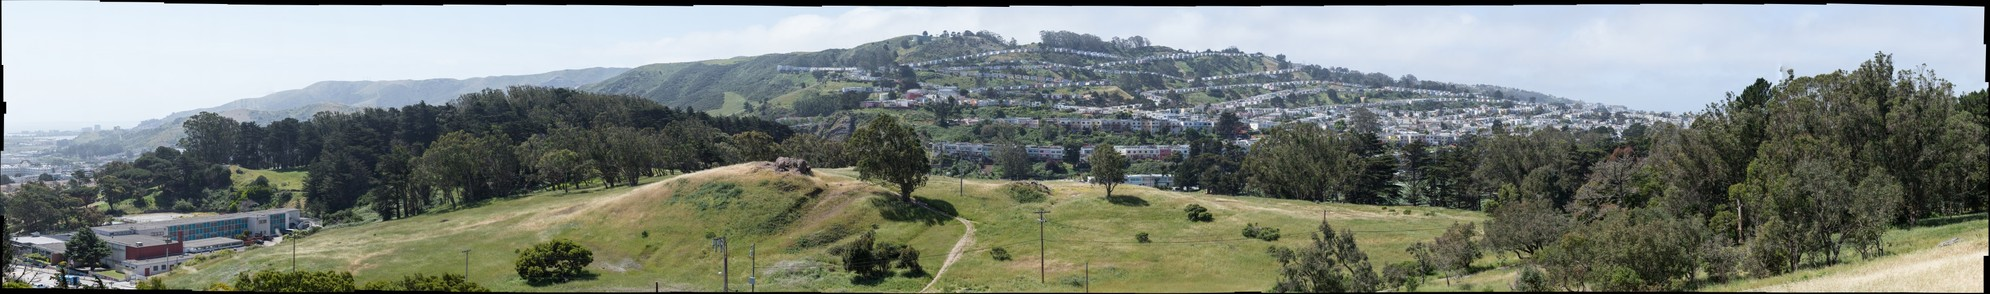 John McLaren Park - View to South from Above Golf Course - 300mm